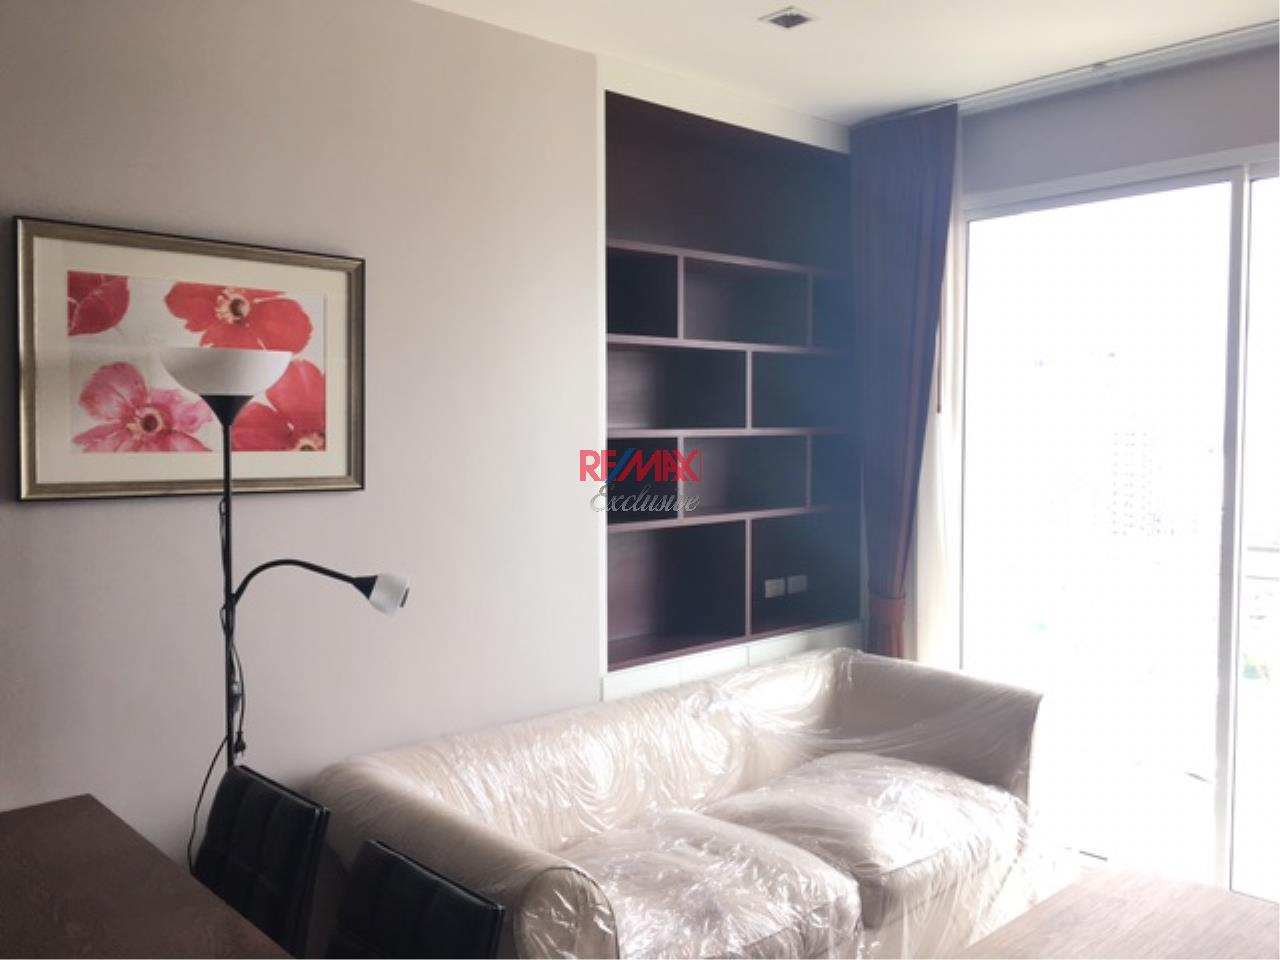 RE/MAX Exclusive Agency's The BLOOM, Sukhumvit 71.,2 Bedroom, 59 Sqm., Fully-Furnished, EXCLUSIVE UNIT, TOP FLOOR for RENT !! 1